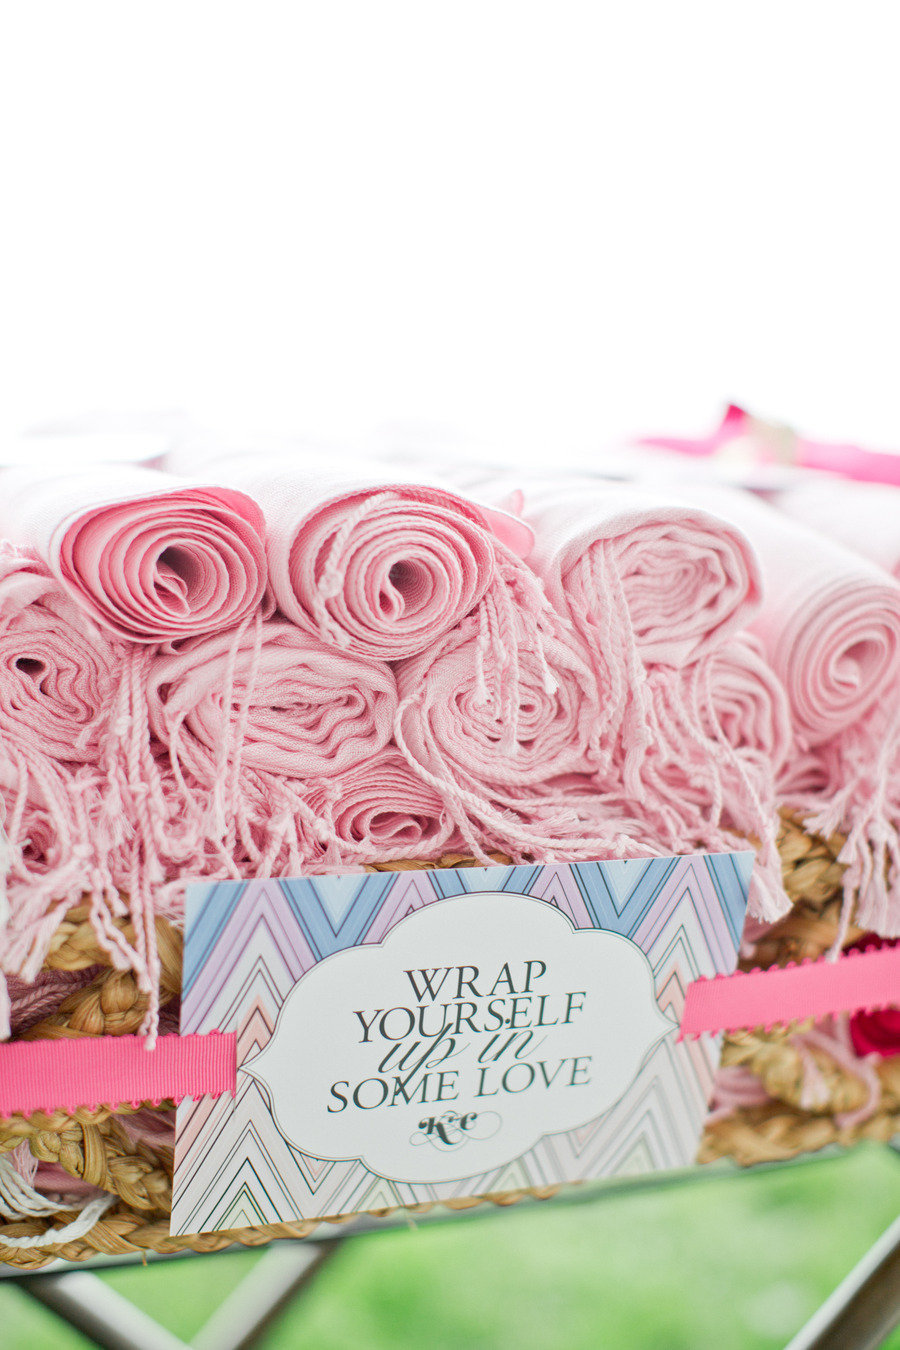 pashmina wedding favors in shades of pink